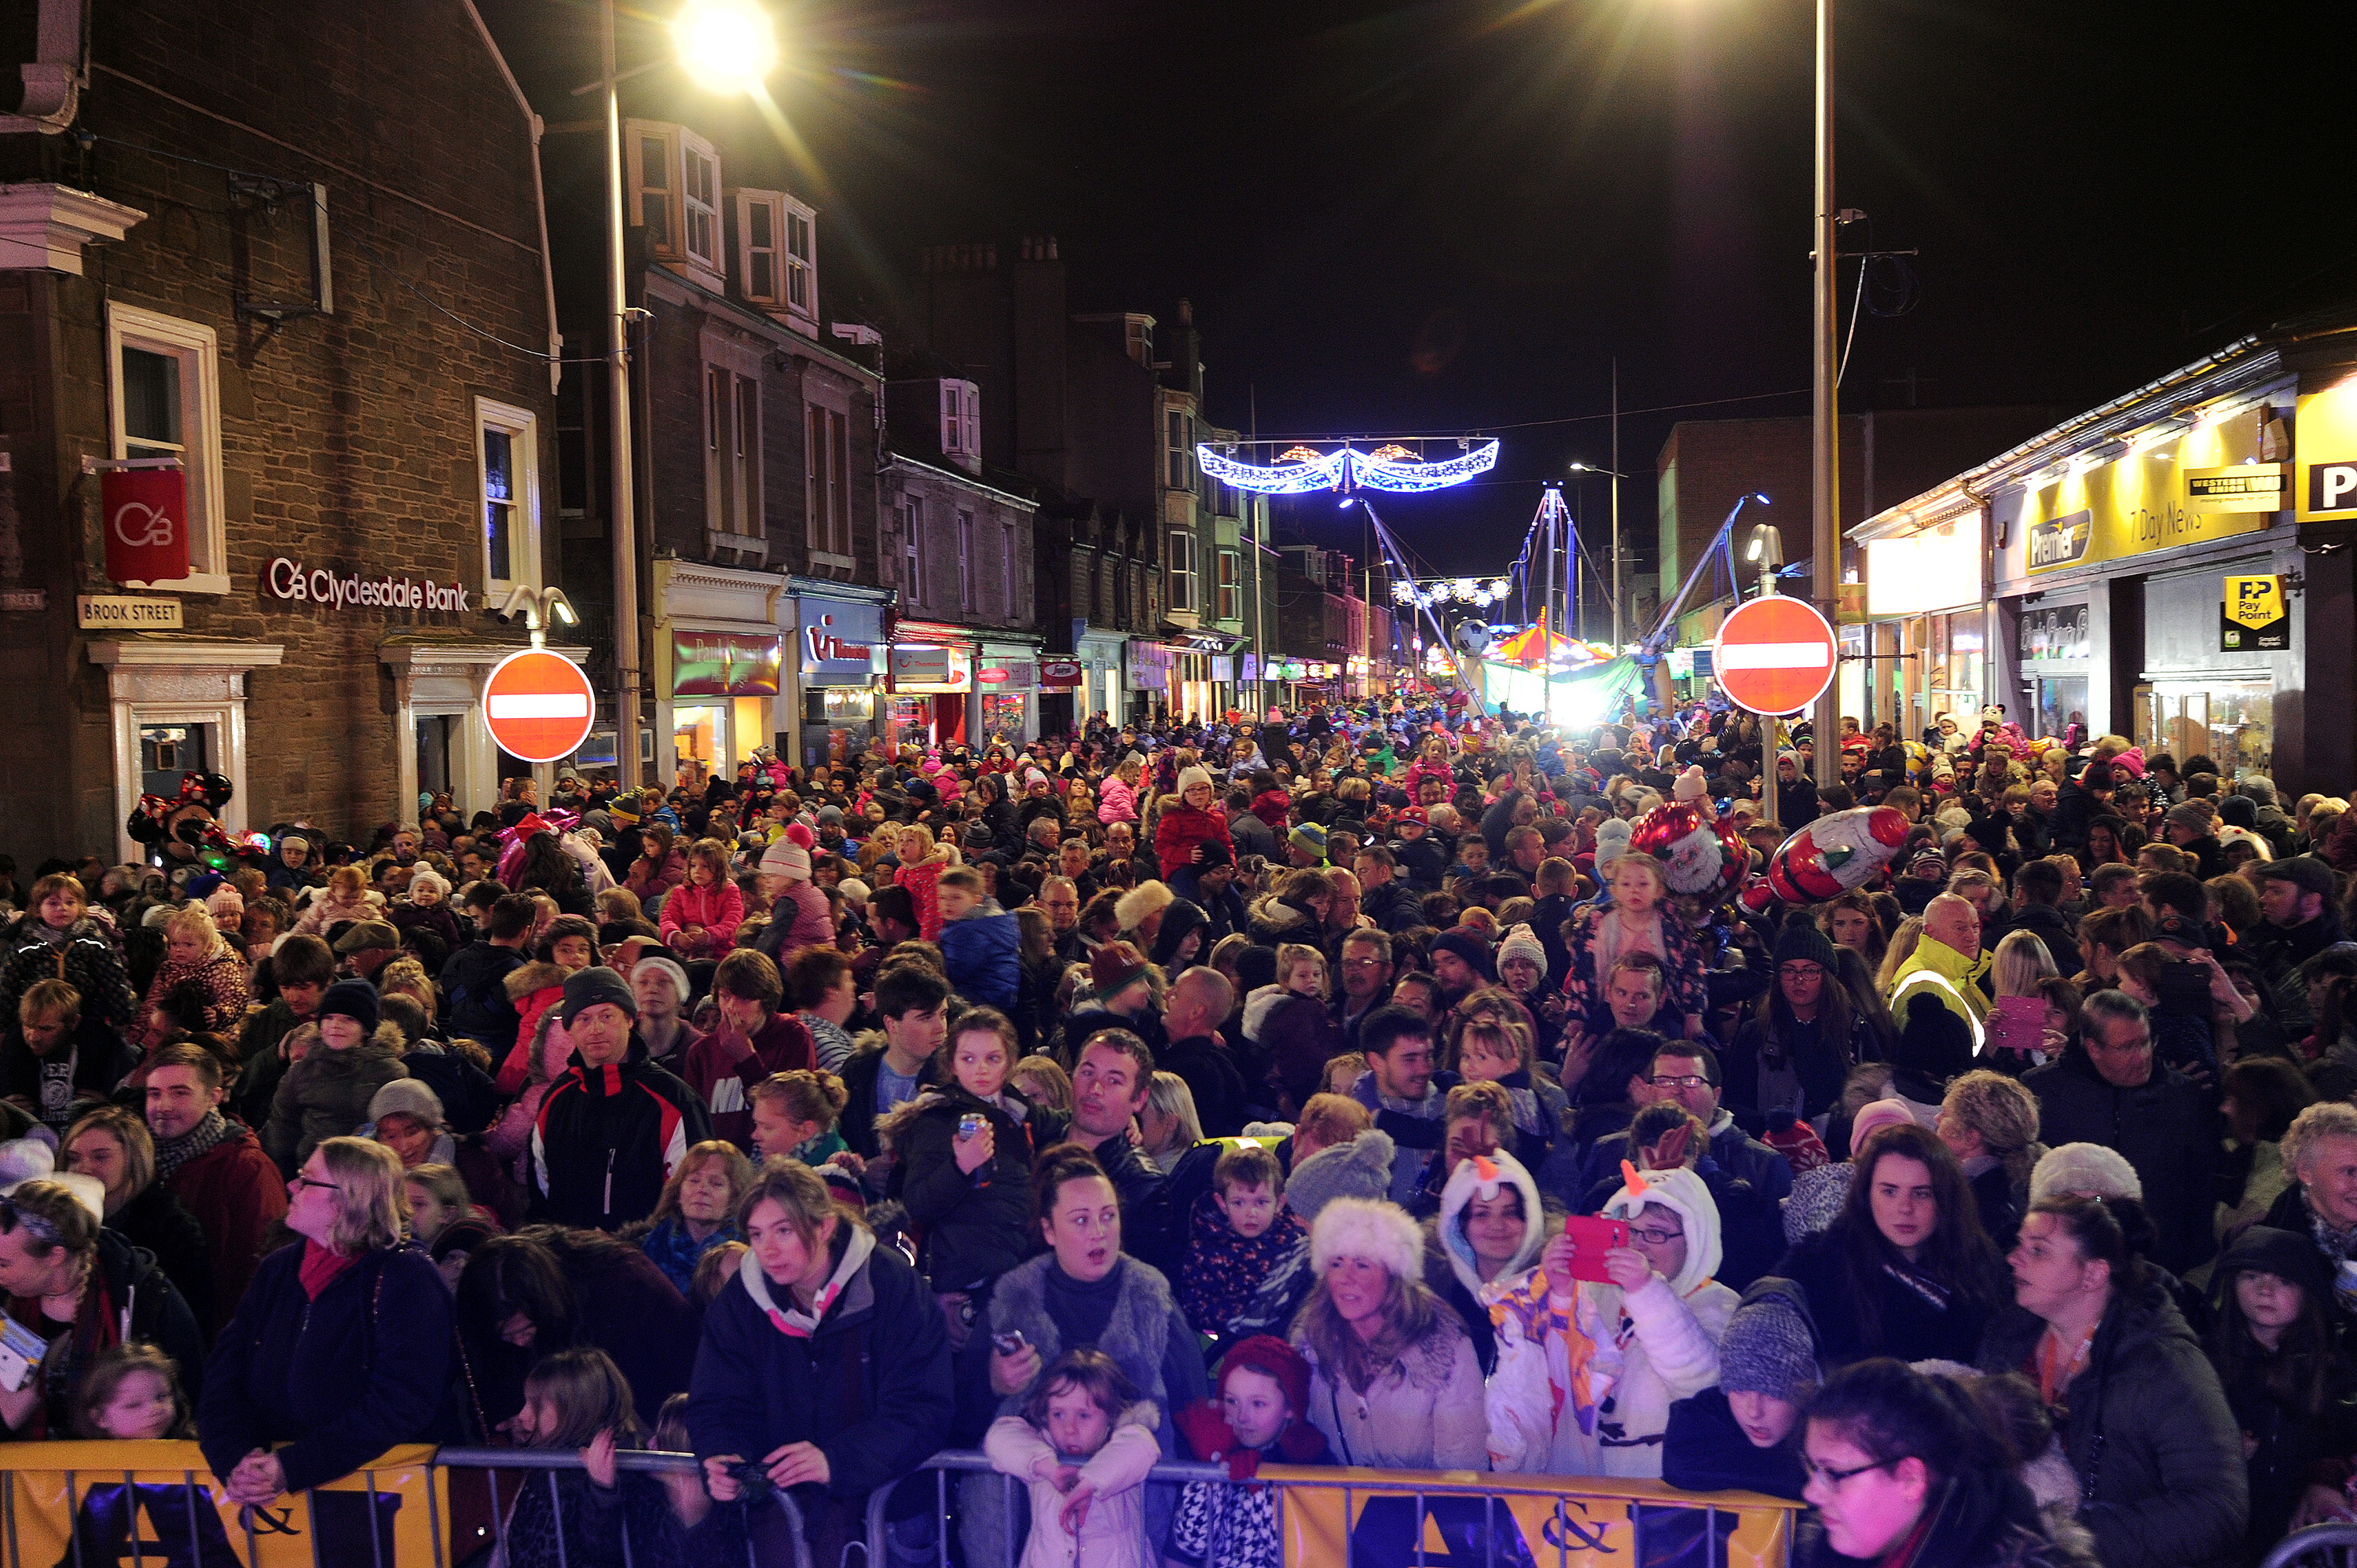 Last year's event saw thousands of people attend.